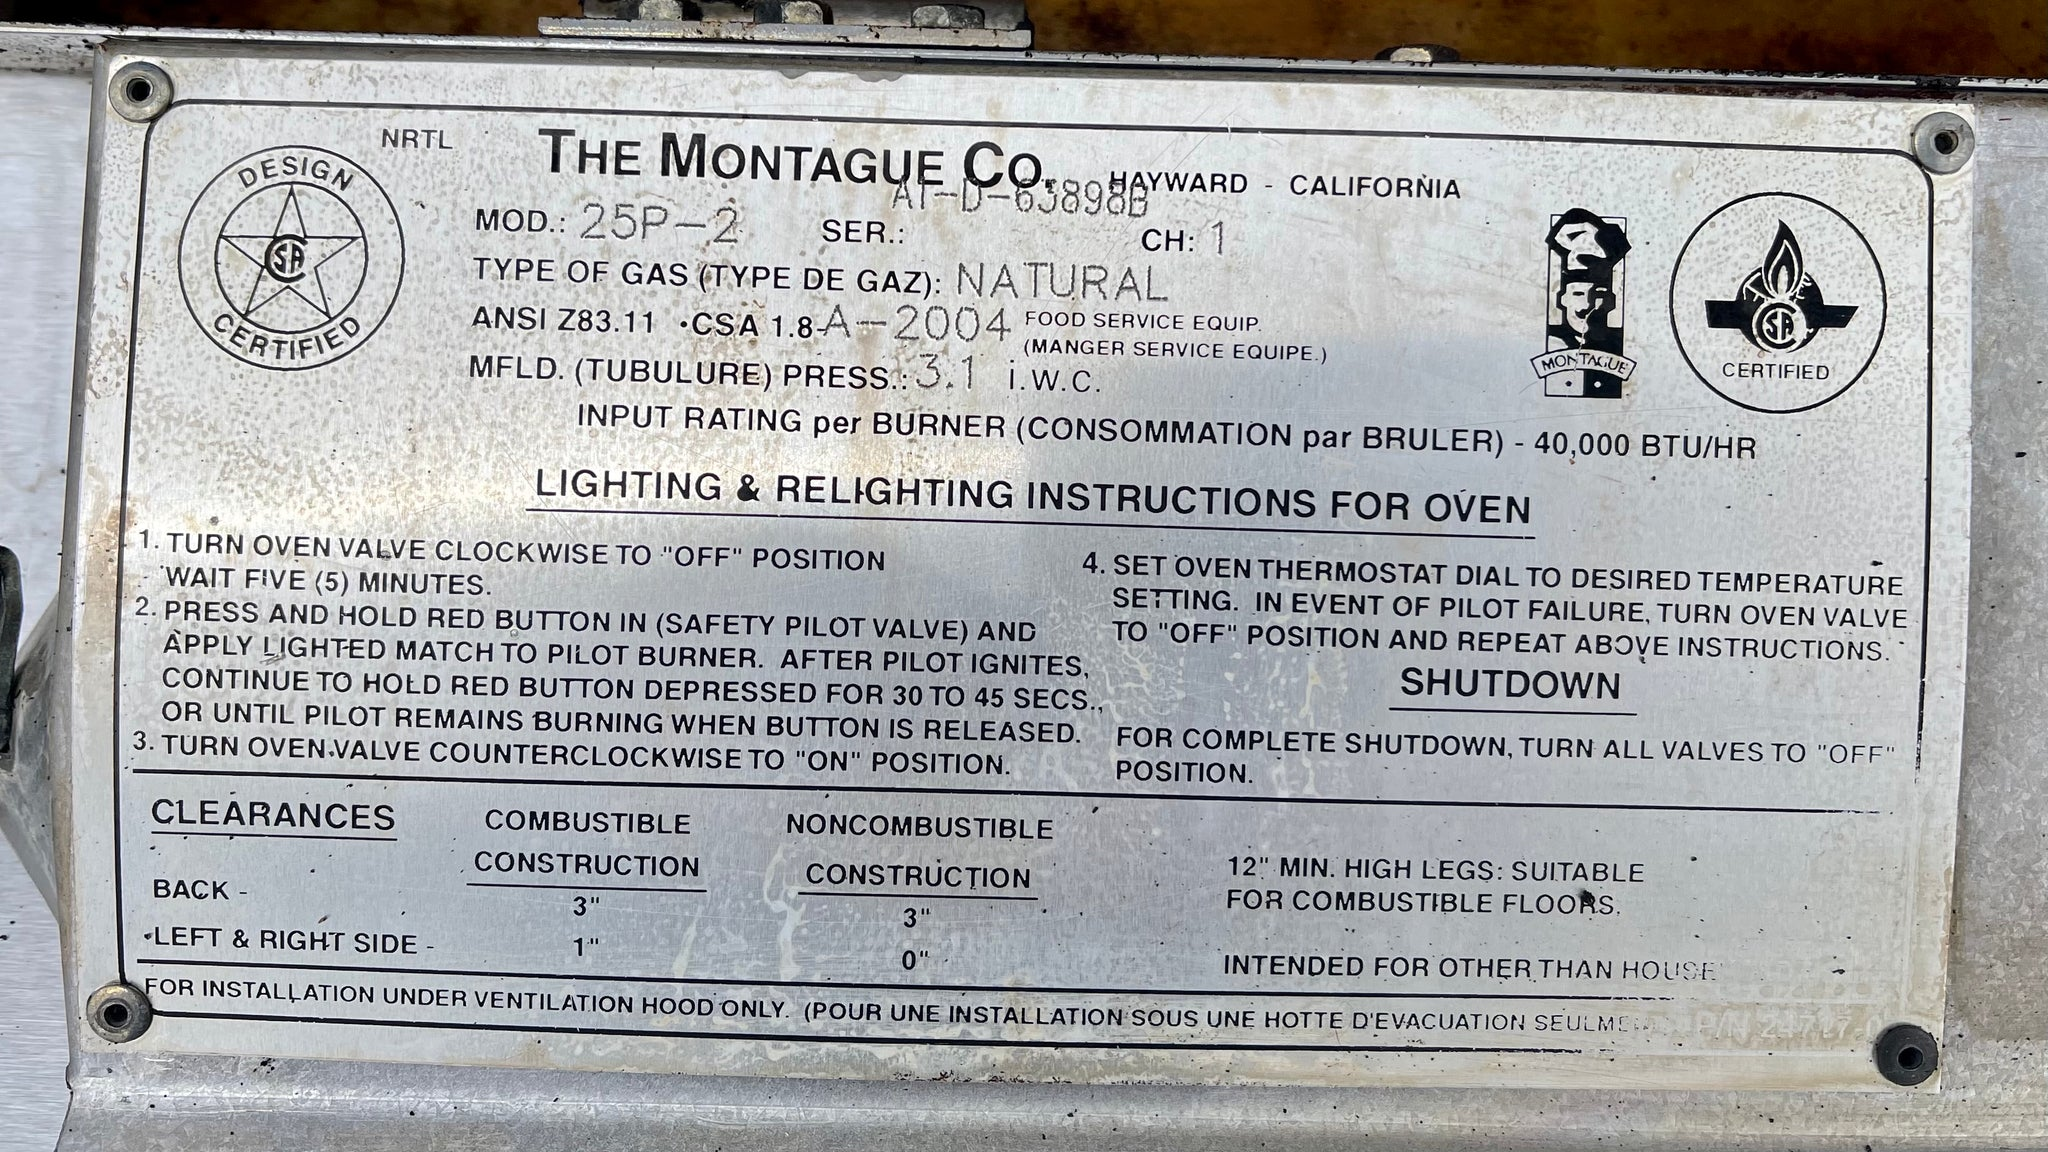 Montague 25P-2 Hearth bake 6 pie Doublestack pizza oven